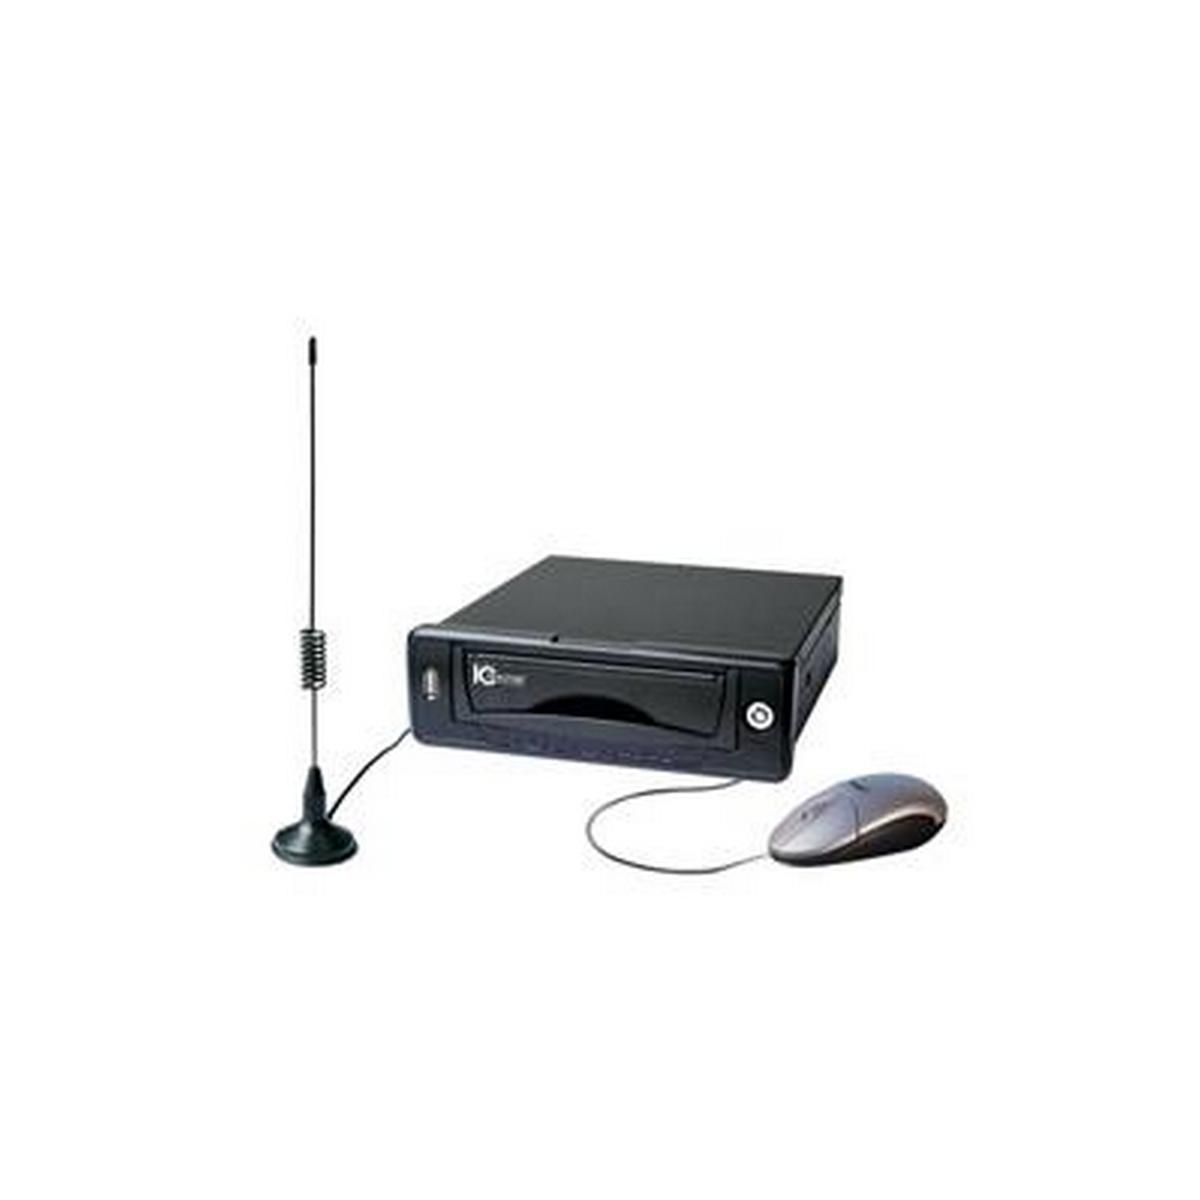 4 CHANNEL MOBILE DVR - FEATURES A 250 GB HARD DRIVE, 120/120 FPS AT CIF, UP TO D1 WITH H.264E WITH GPS, SINGLE DIN NO DVD